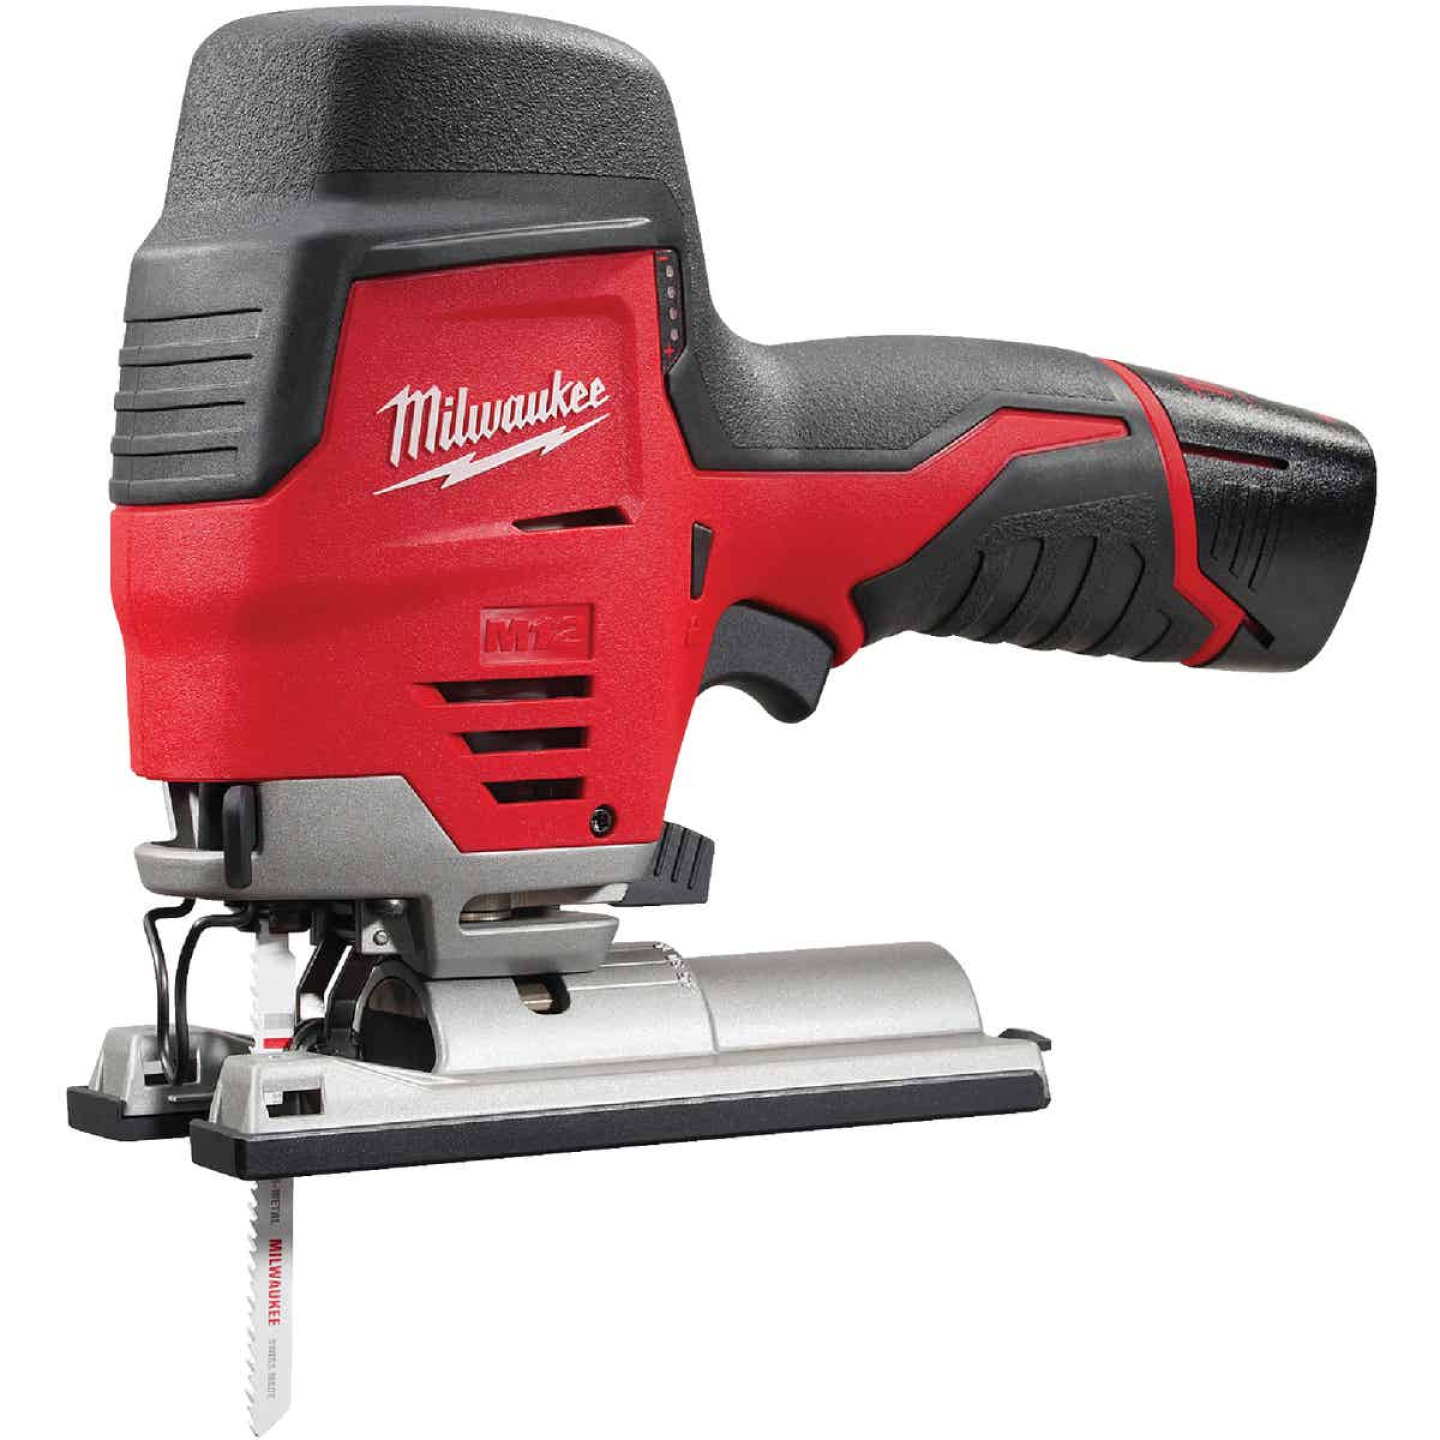 Milwaukee M12 12 Volt Lithium-Ion 1.5 Ah Cordless Jig Saw Kit Image 1